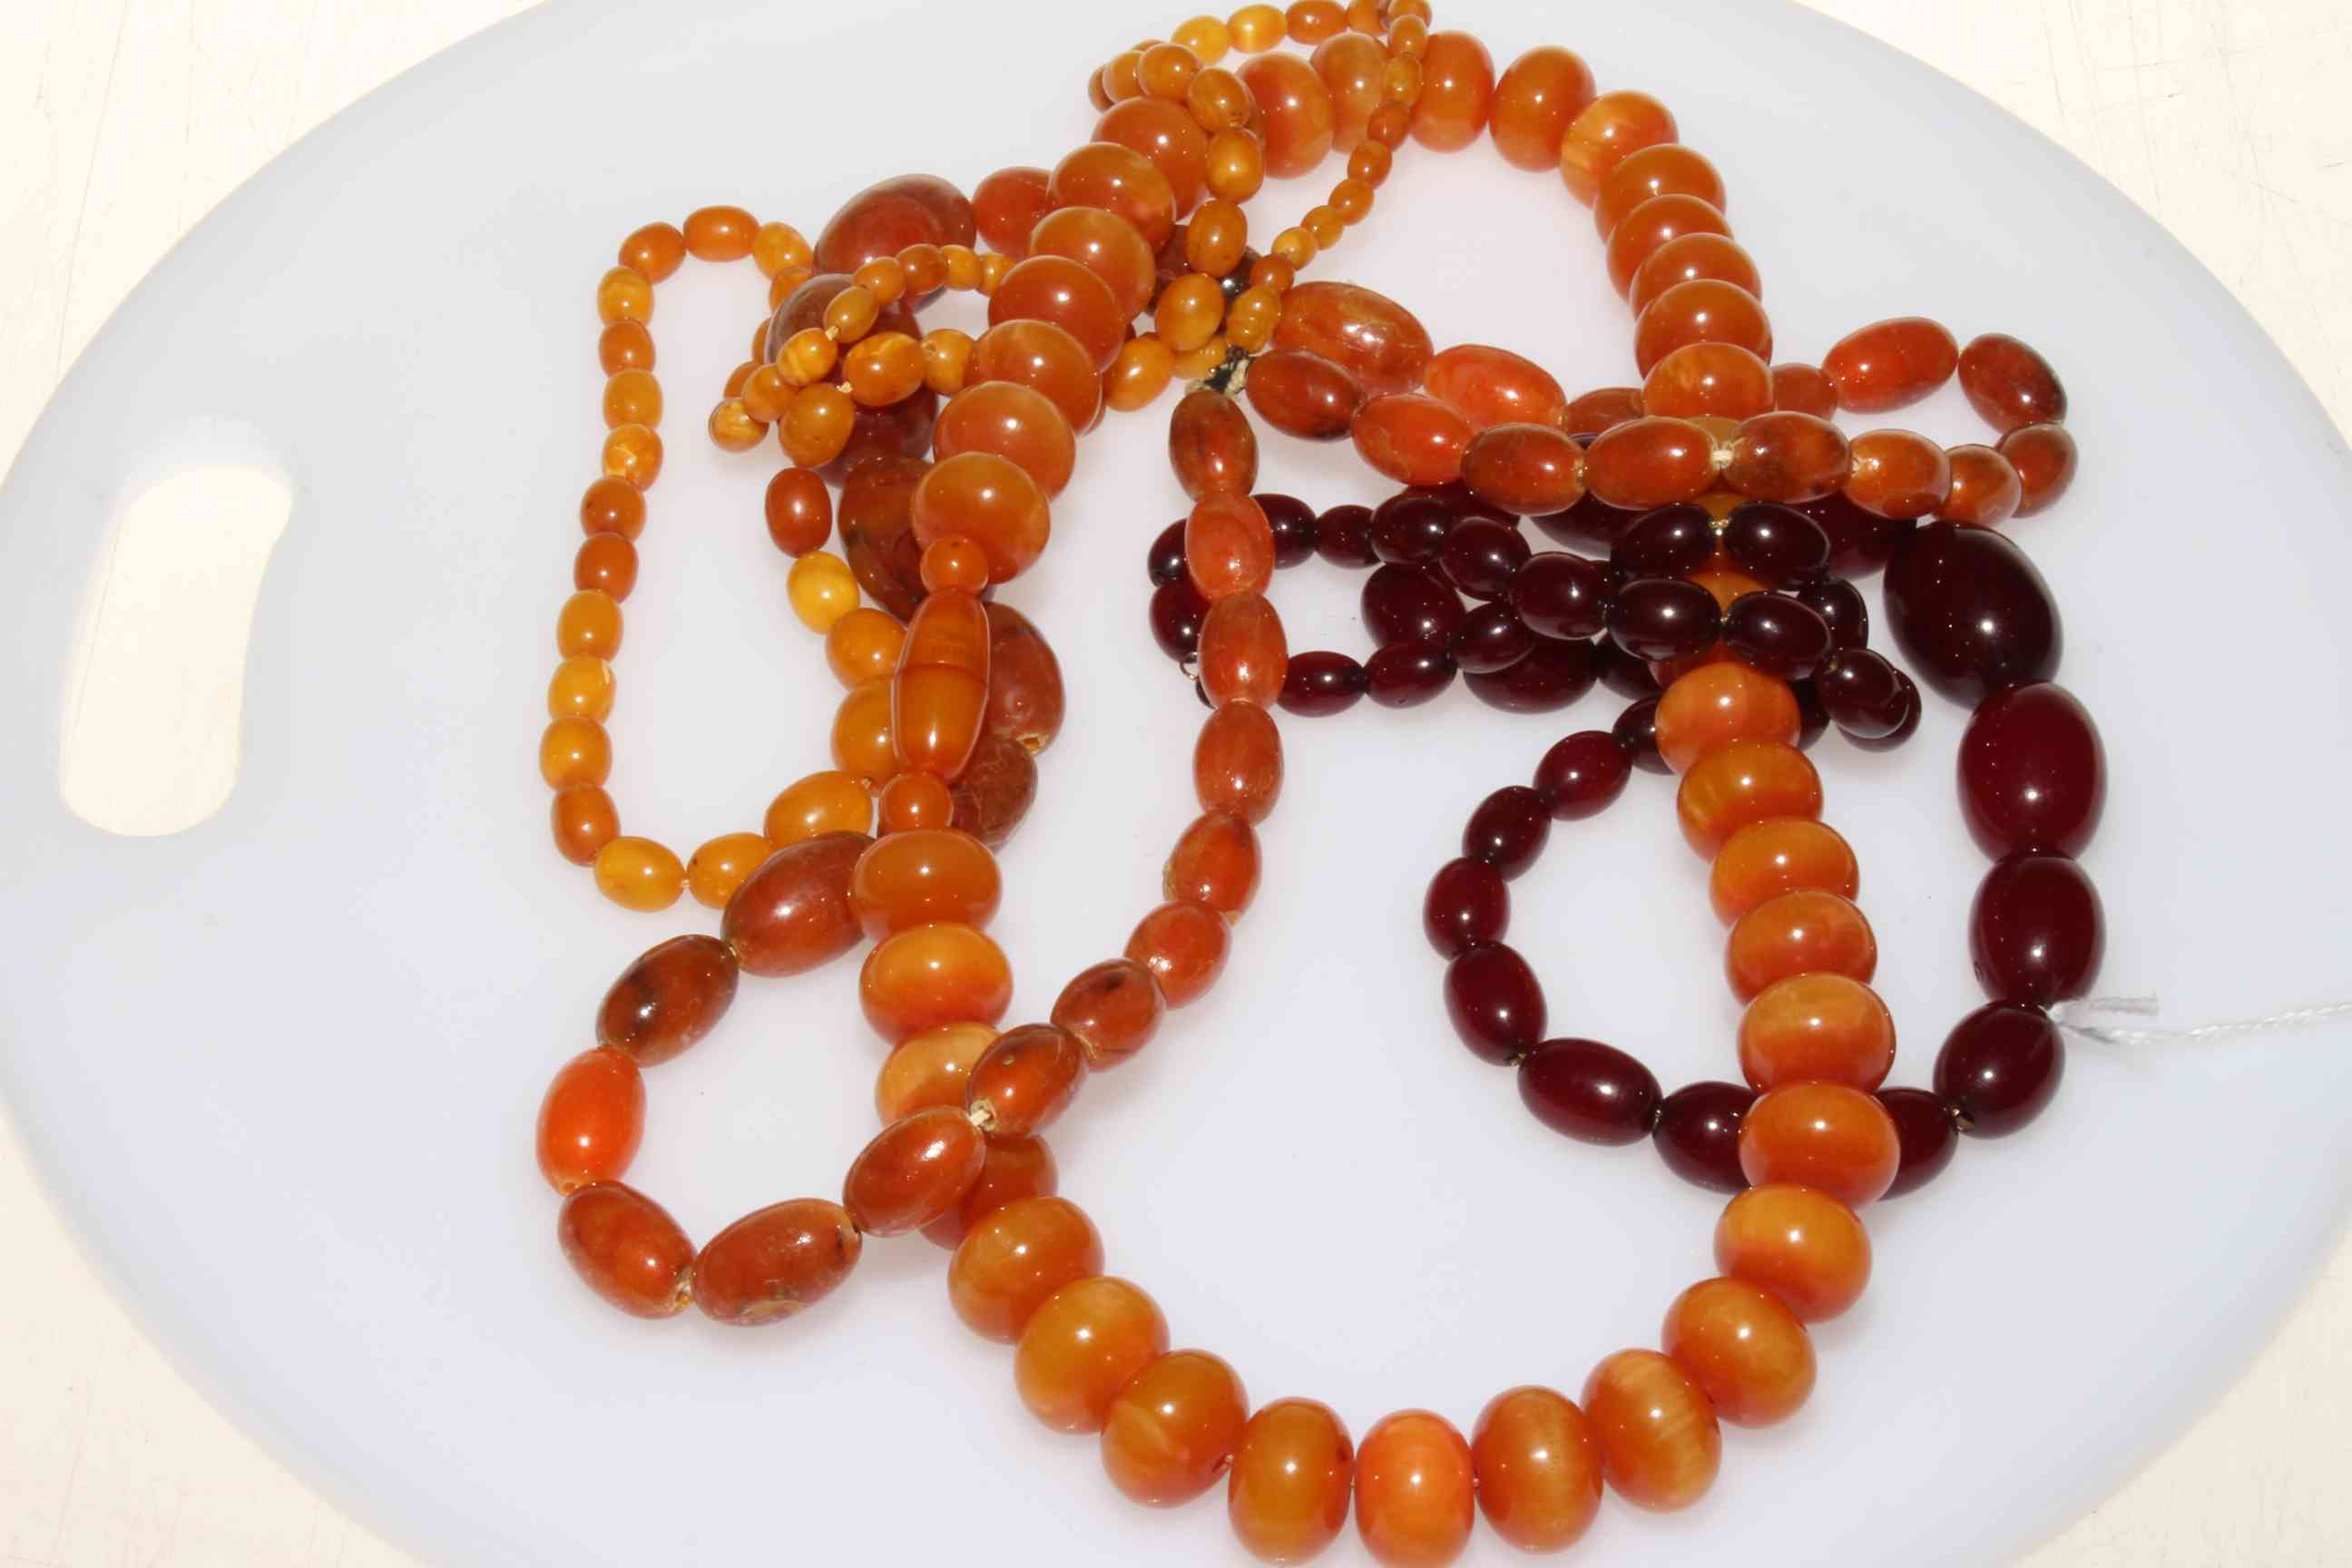 Lot 231 - Necklace of amber beads and three others.